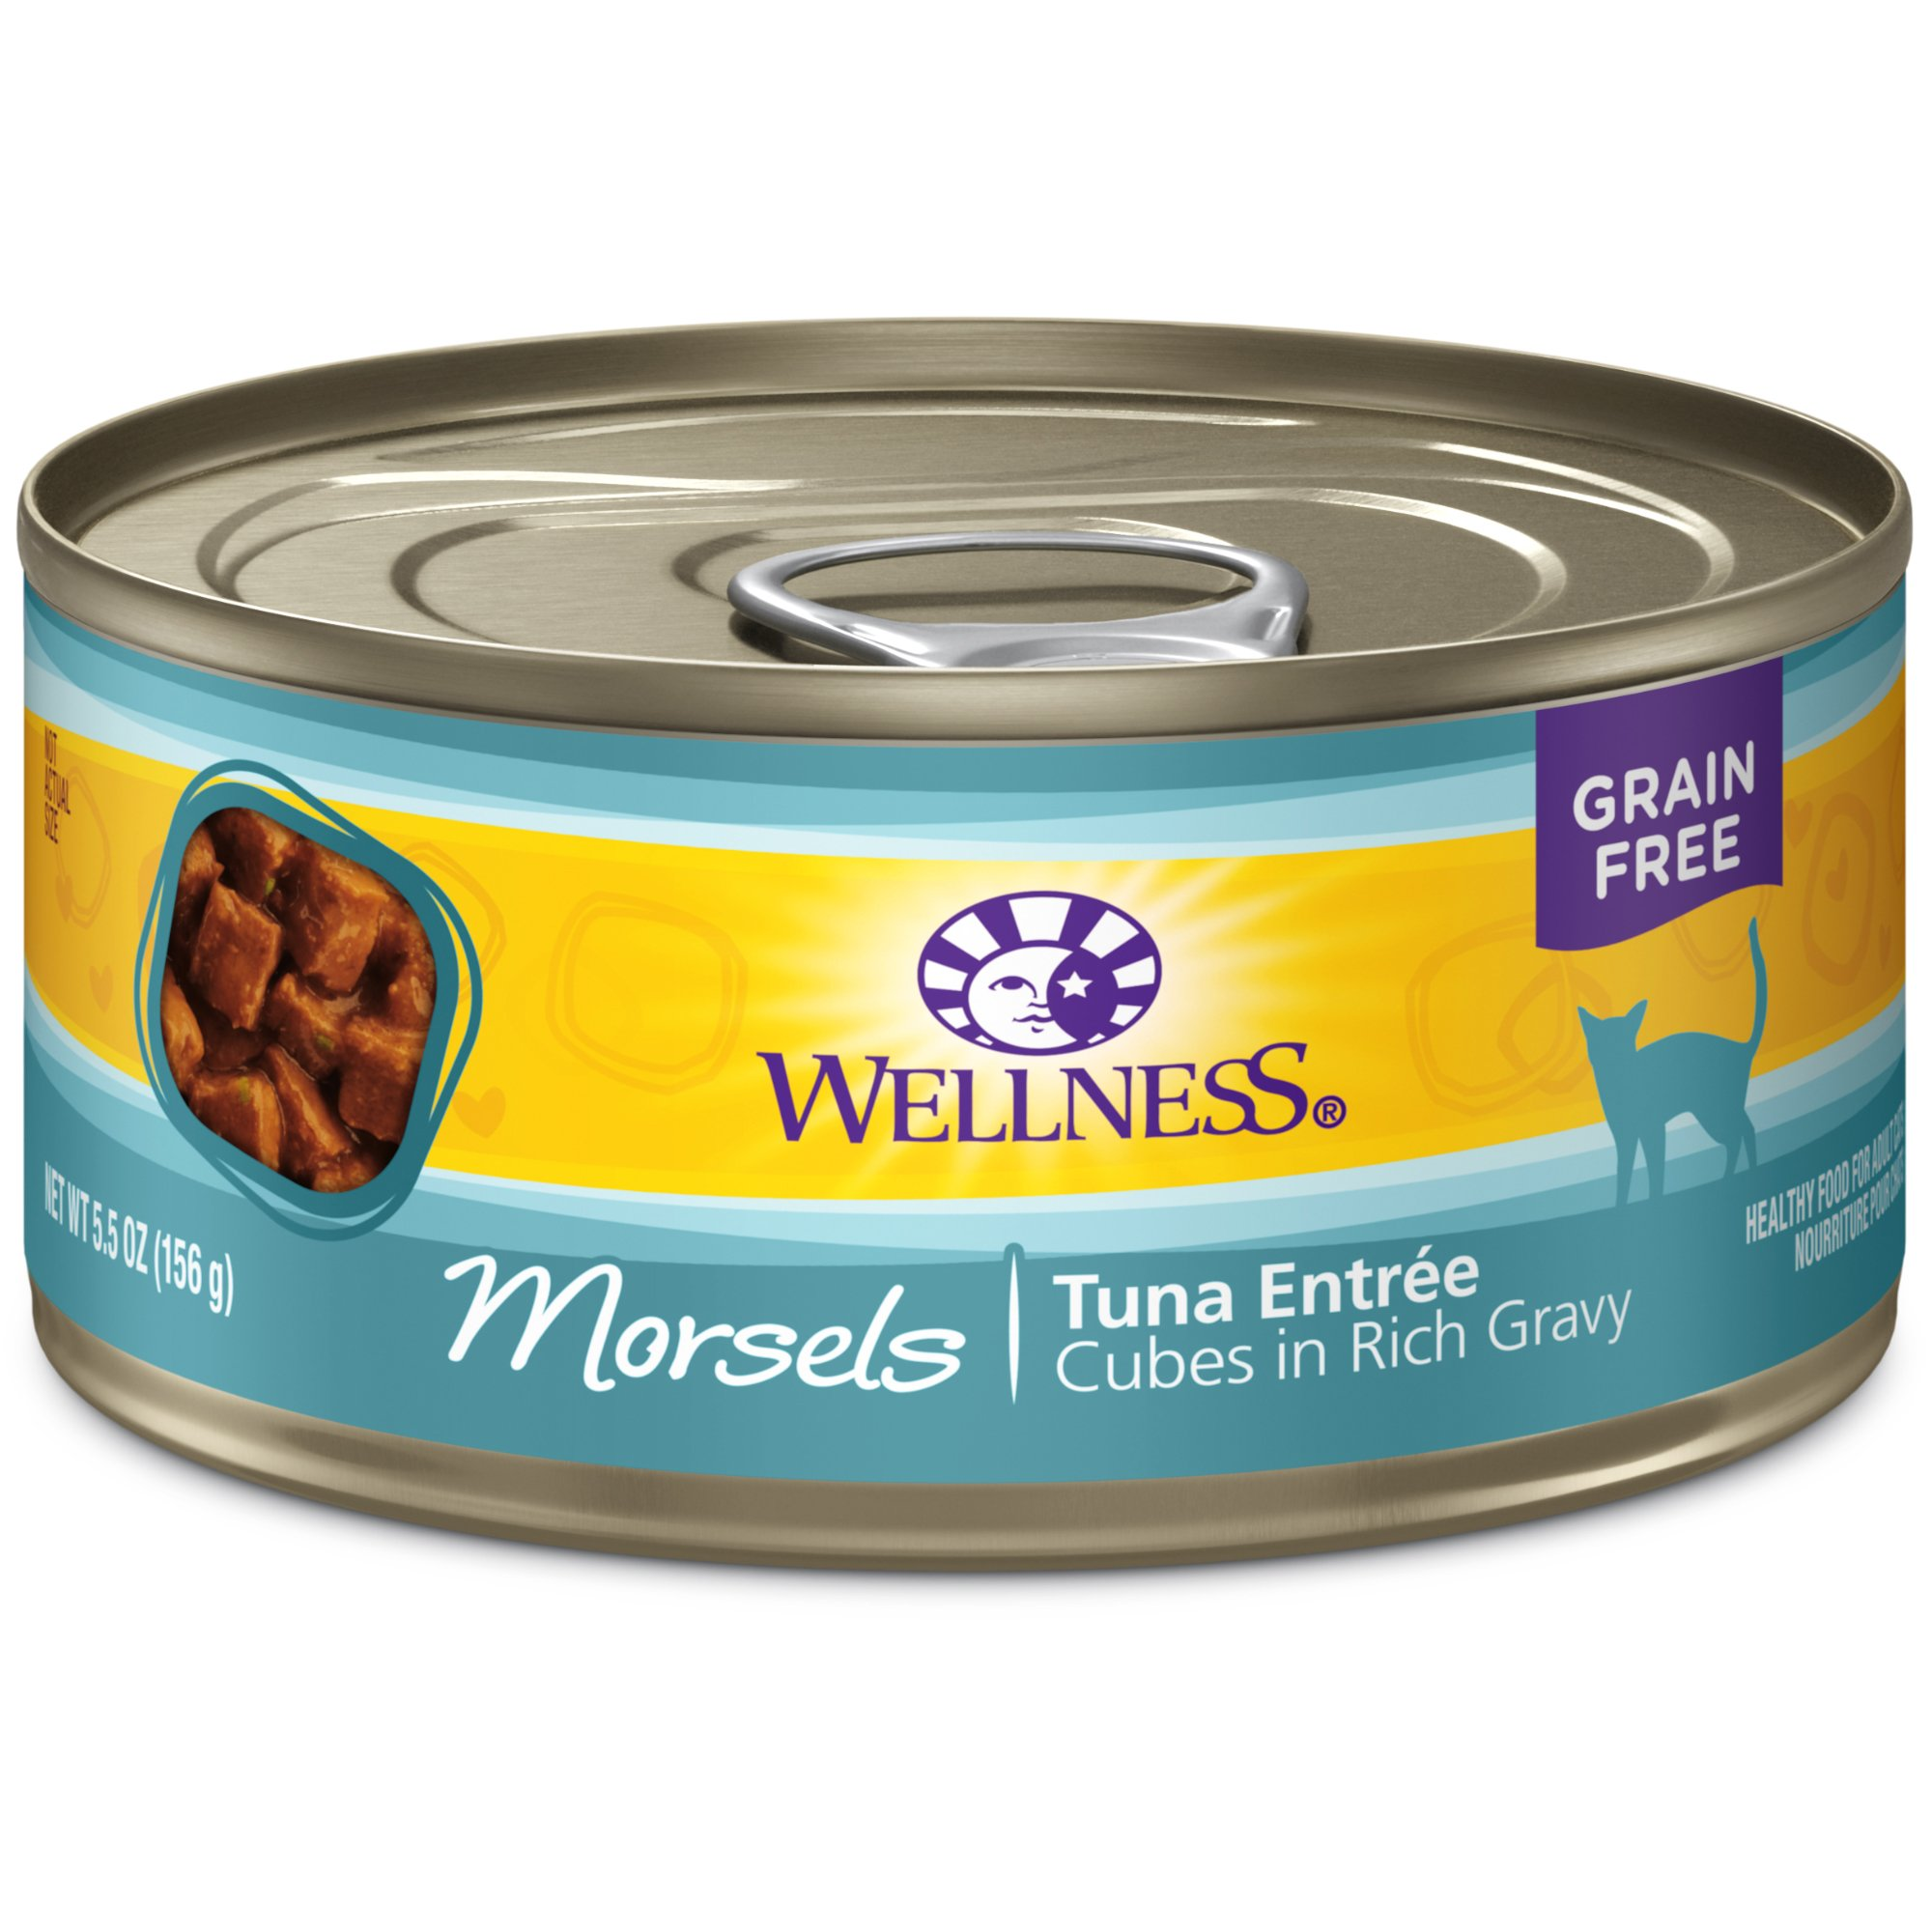 Wellness Complete Health Natural Grain Free Wet Canned Cat Food, Morsels Tuna Entrée, 5.5-Ounce Can (Pack Of 24) by Wellness Natural Pet Food